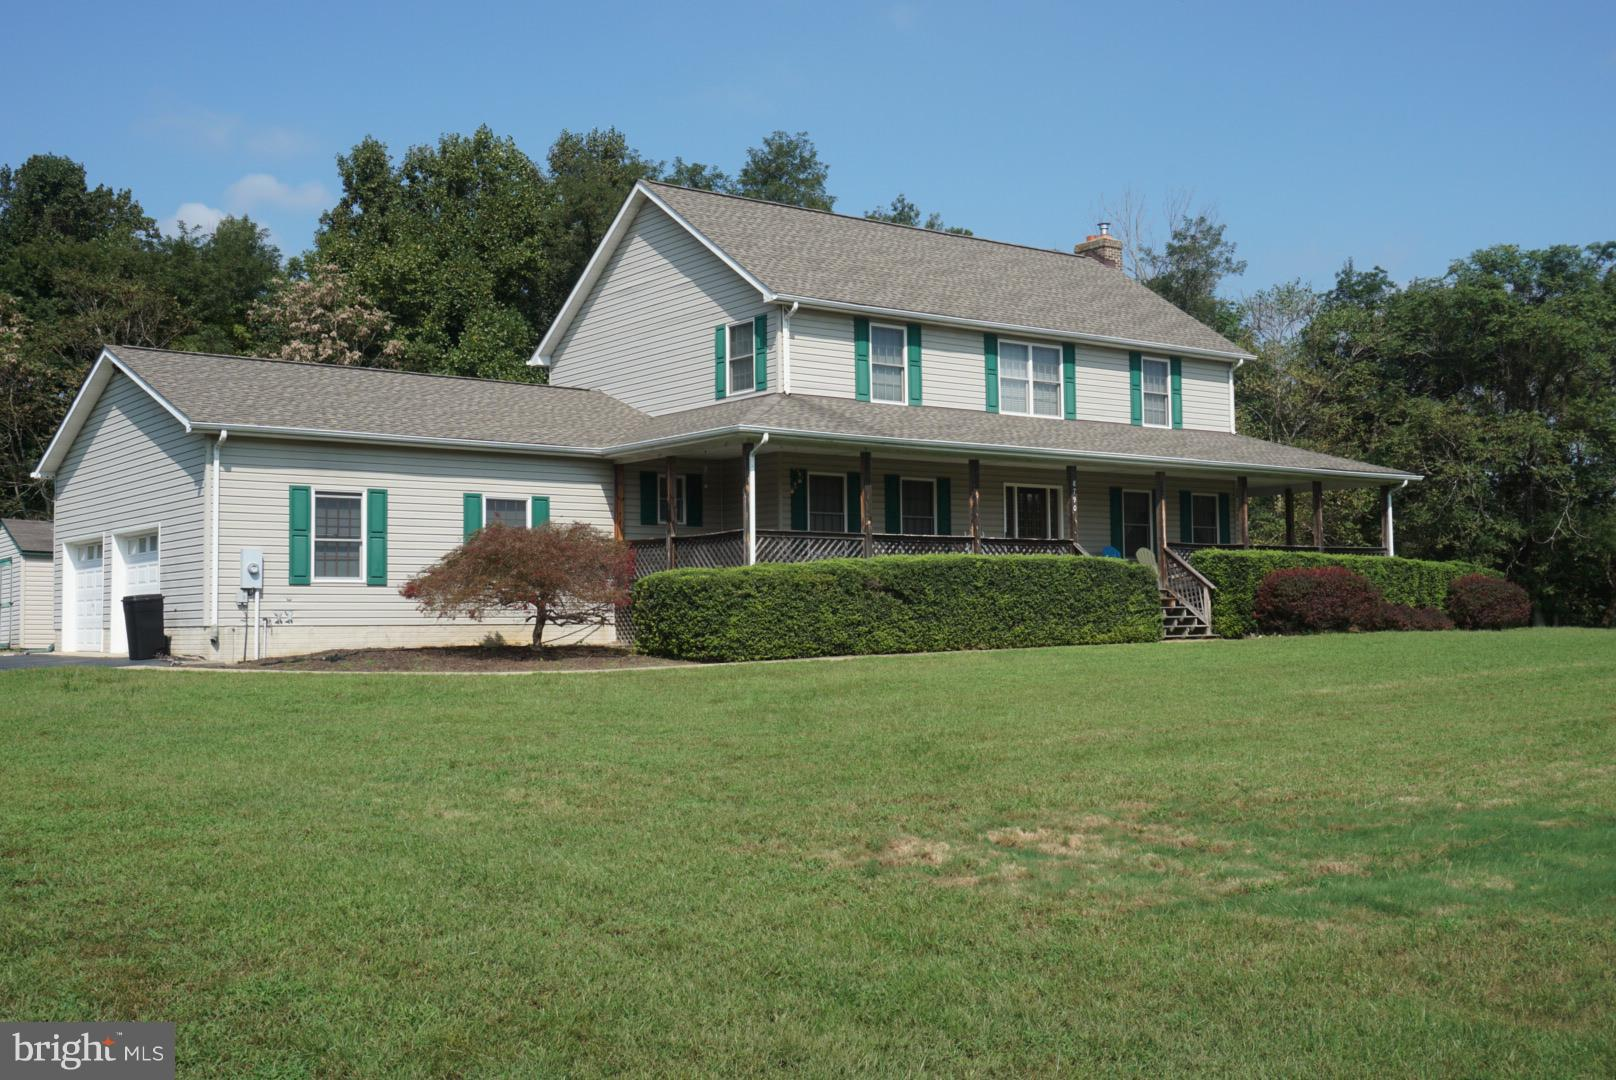 8790 POORHOUSE ROAD, PORT TOBACCO, MD 20677